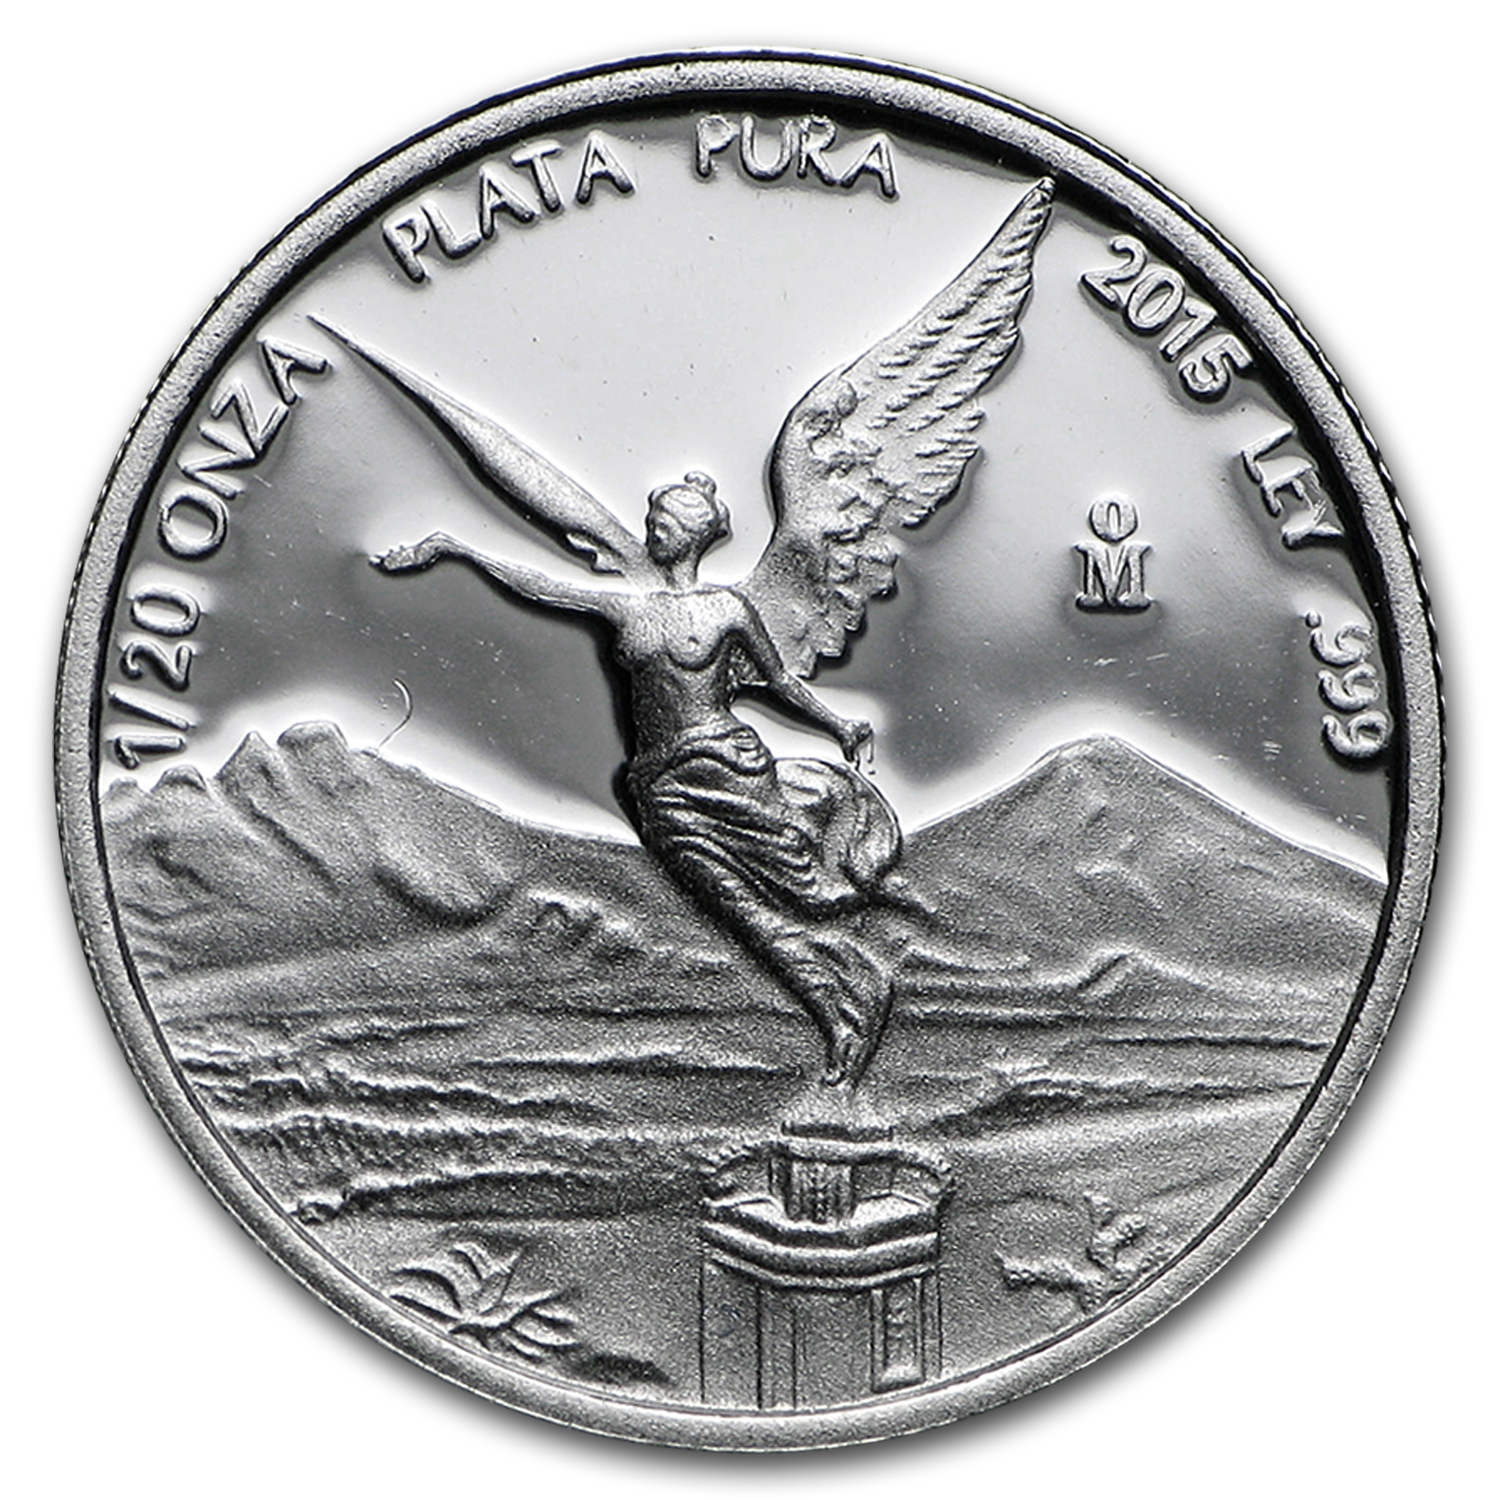 2015 Mexico 1/20 oz Silver Libertad Proof (In Capsule)